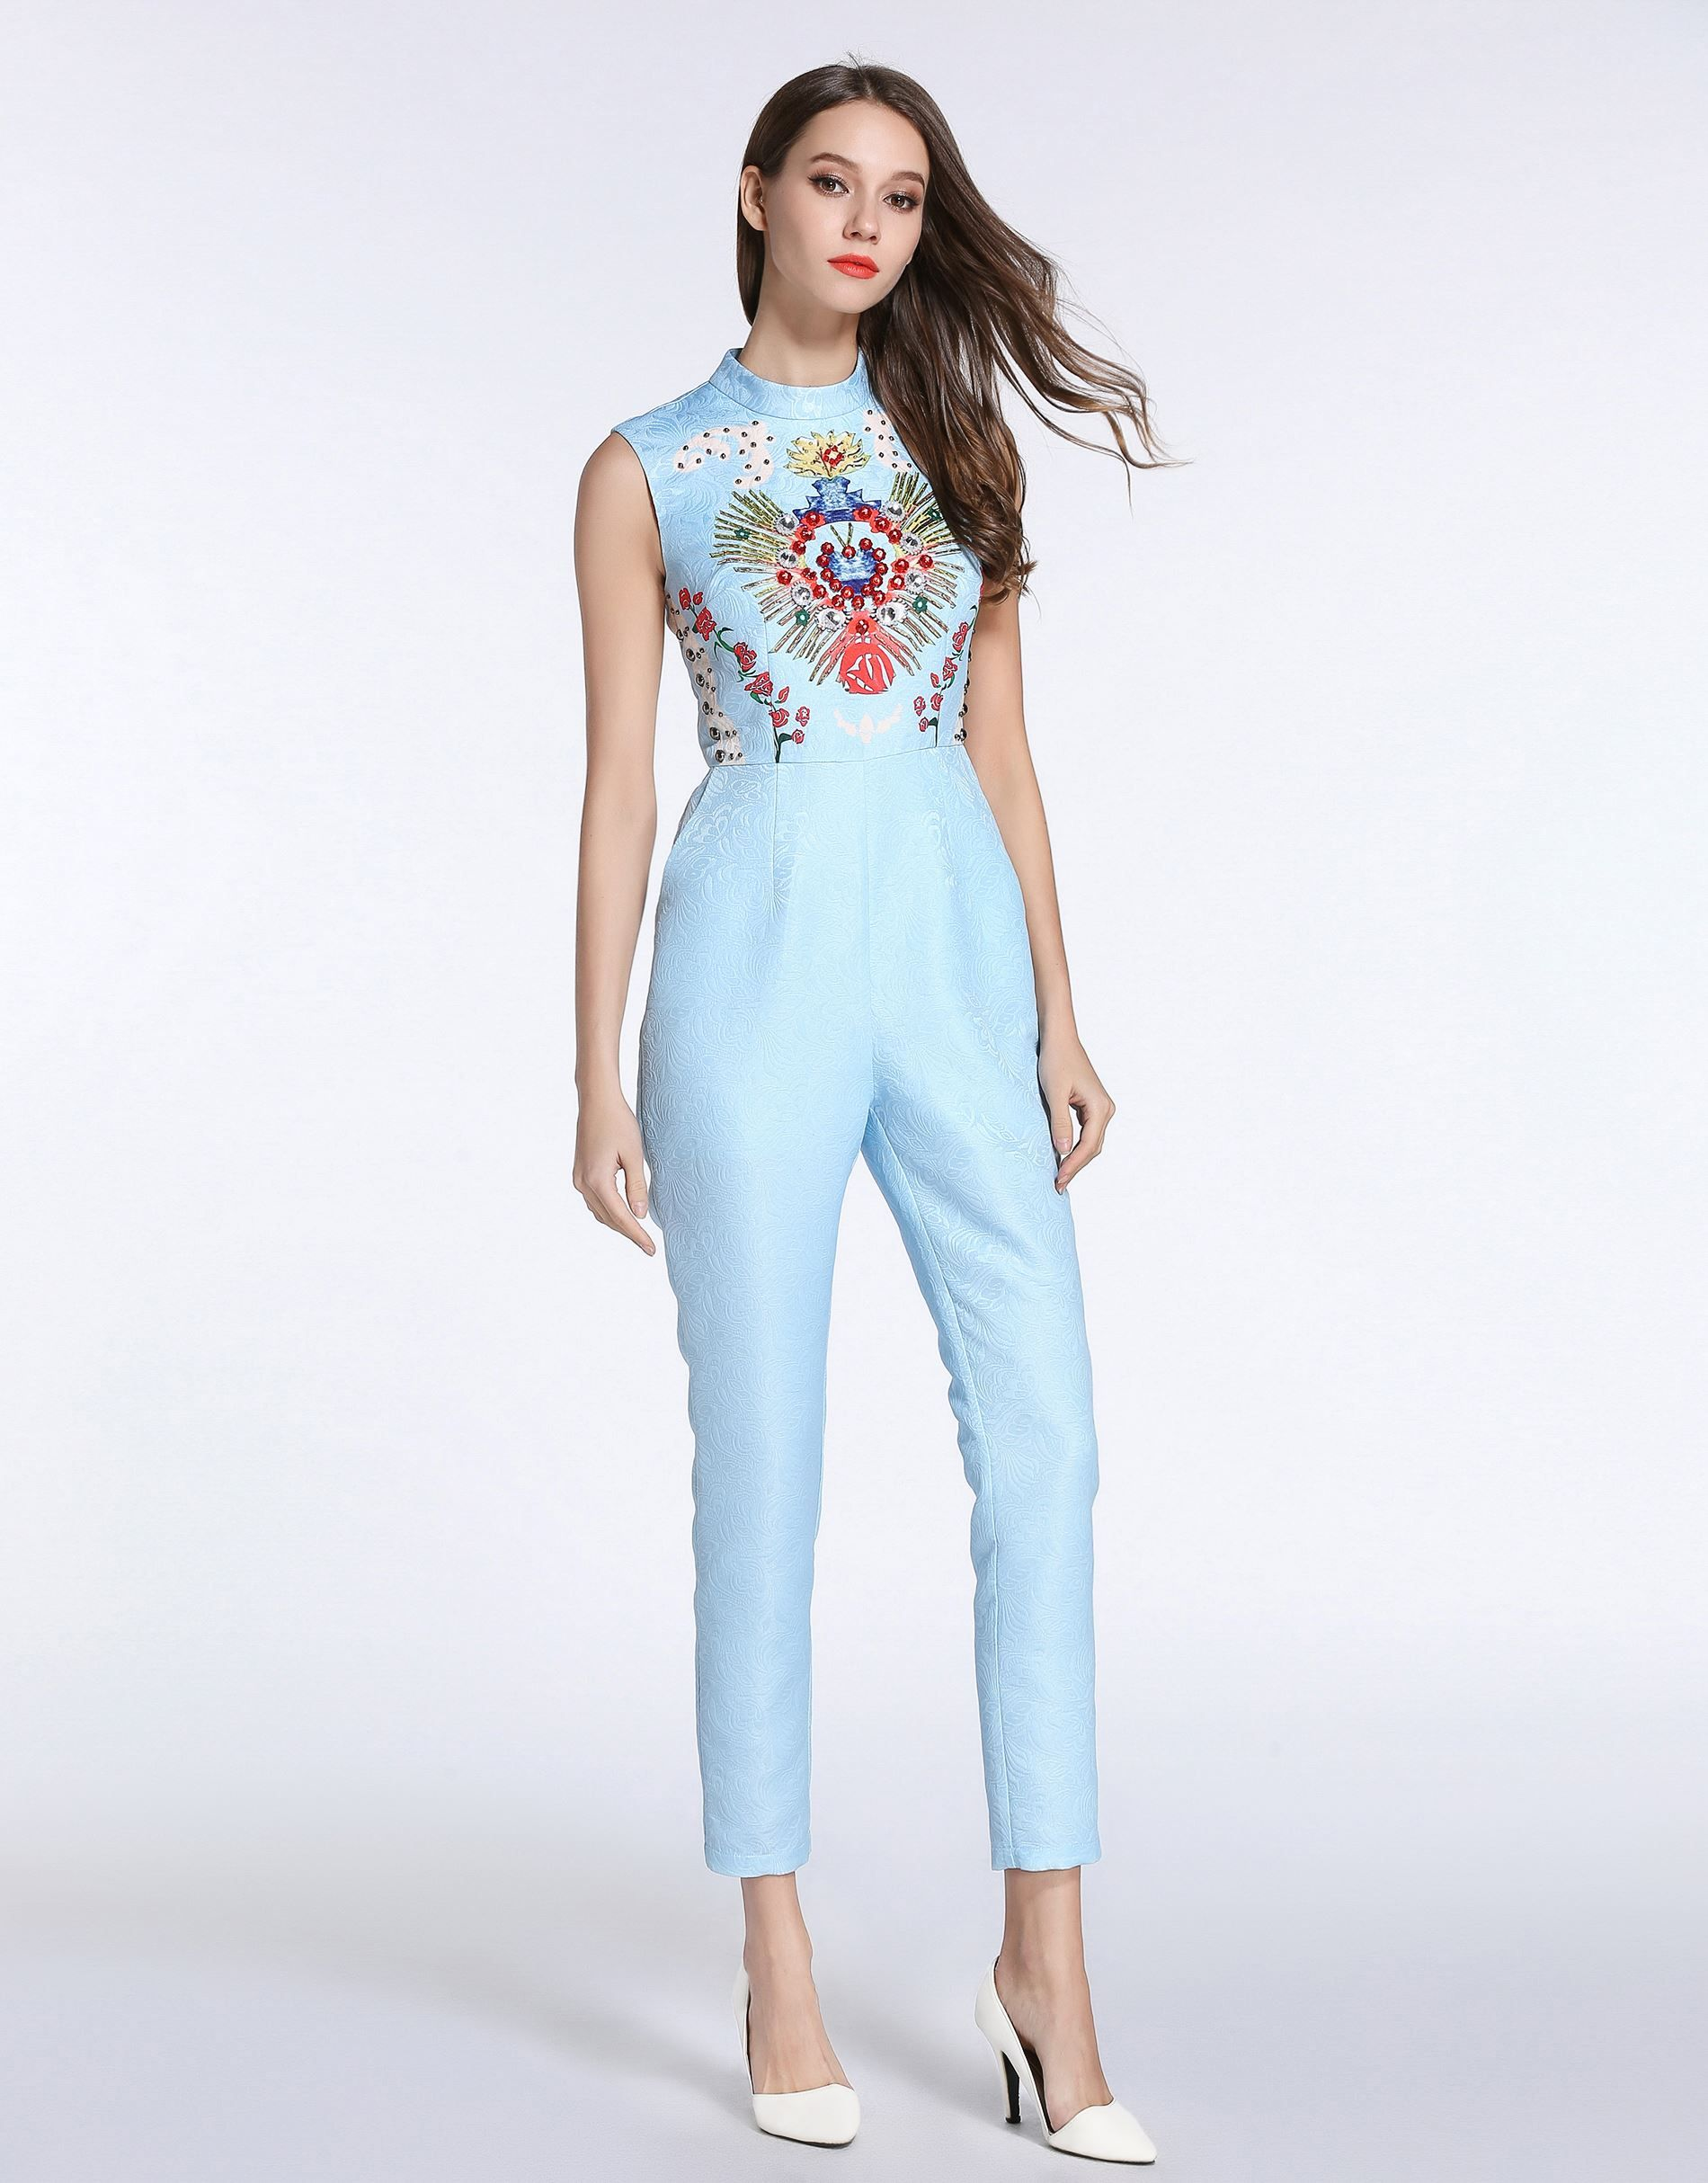 2e0d0f3dd1 Picture of Comino Couture Sky Blue Embellished Jumpsuit ...